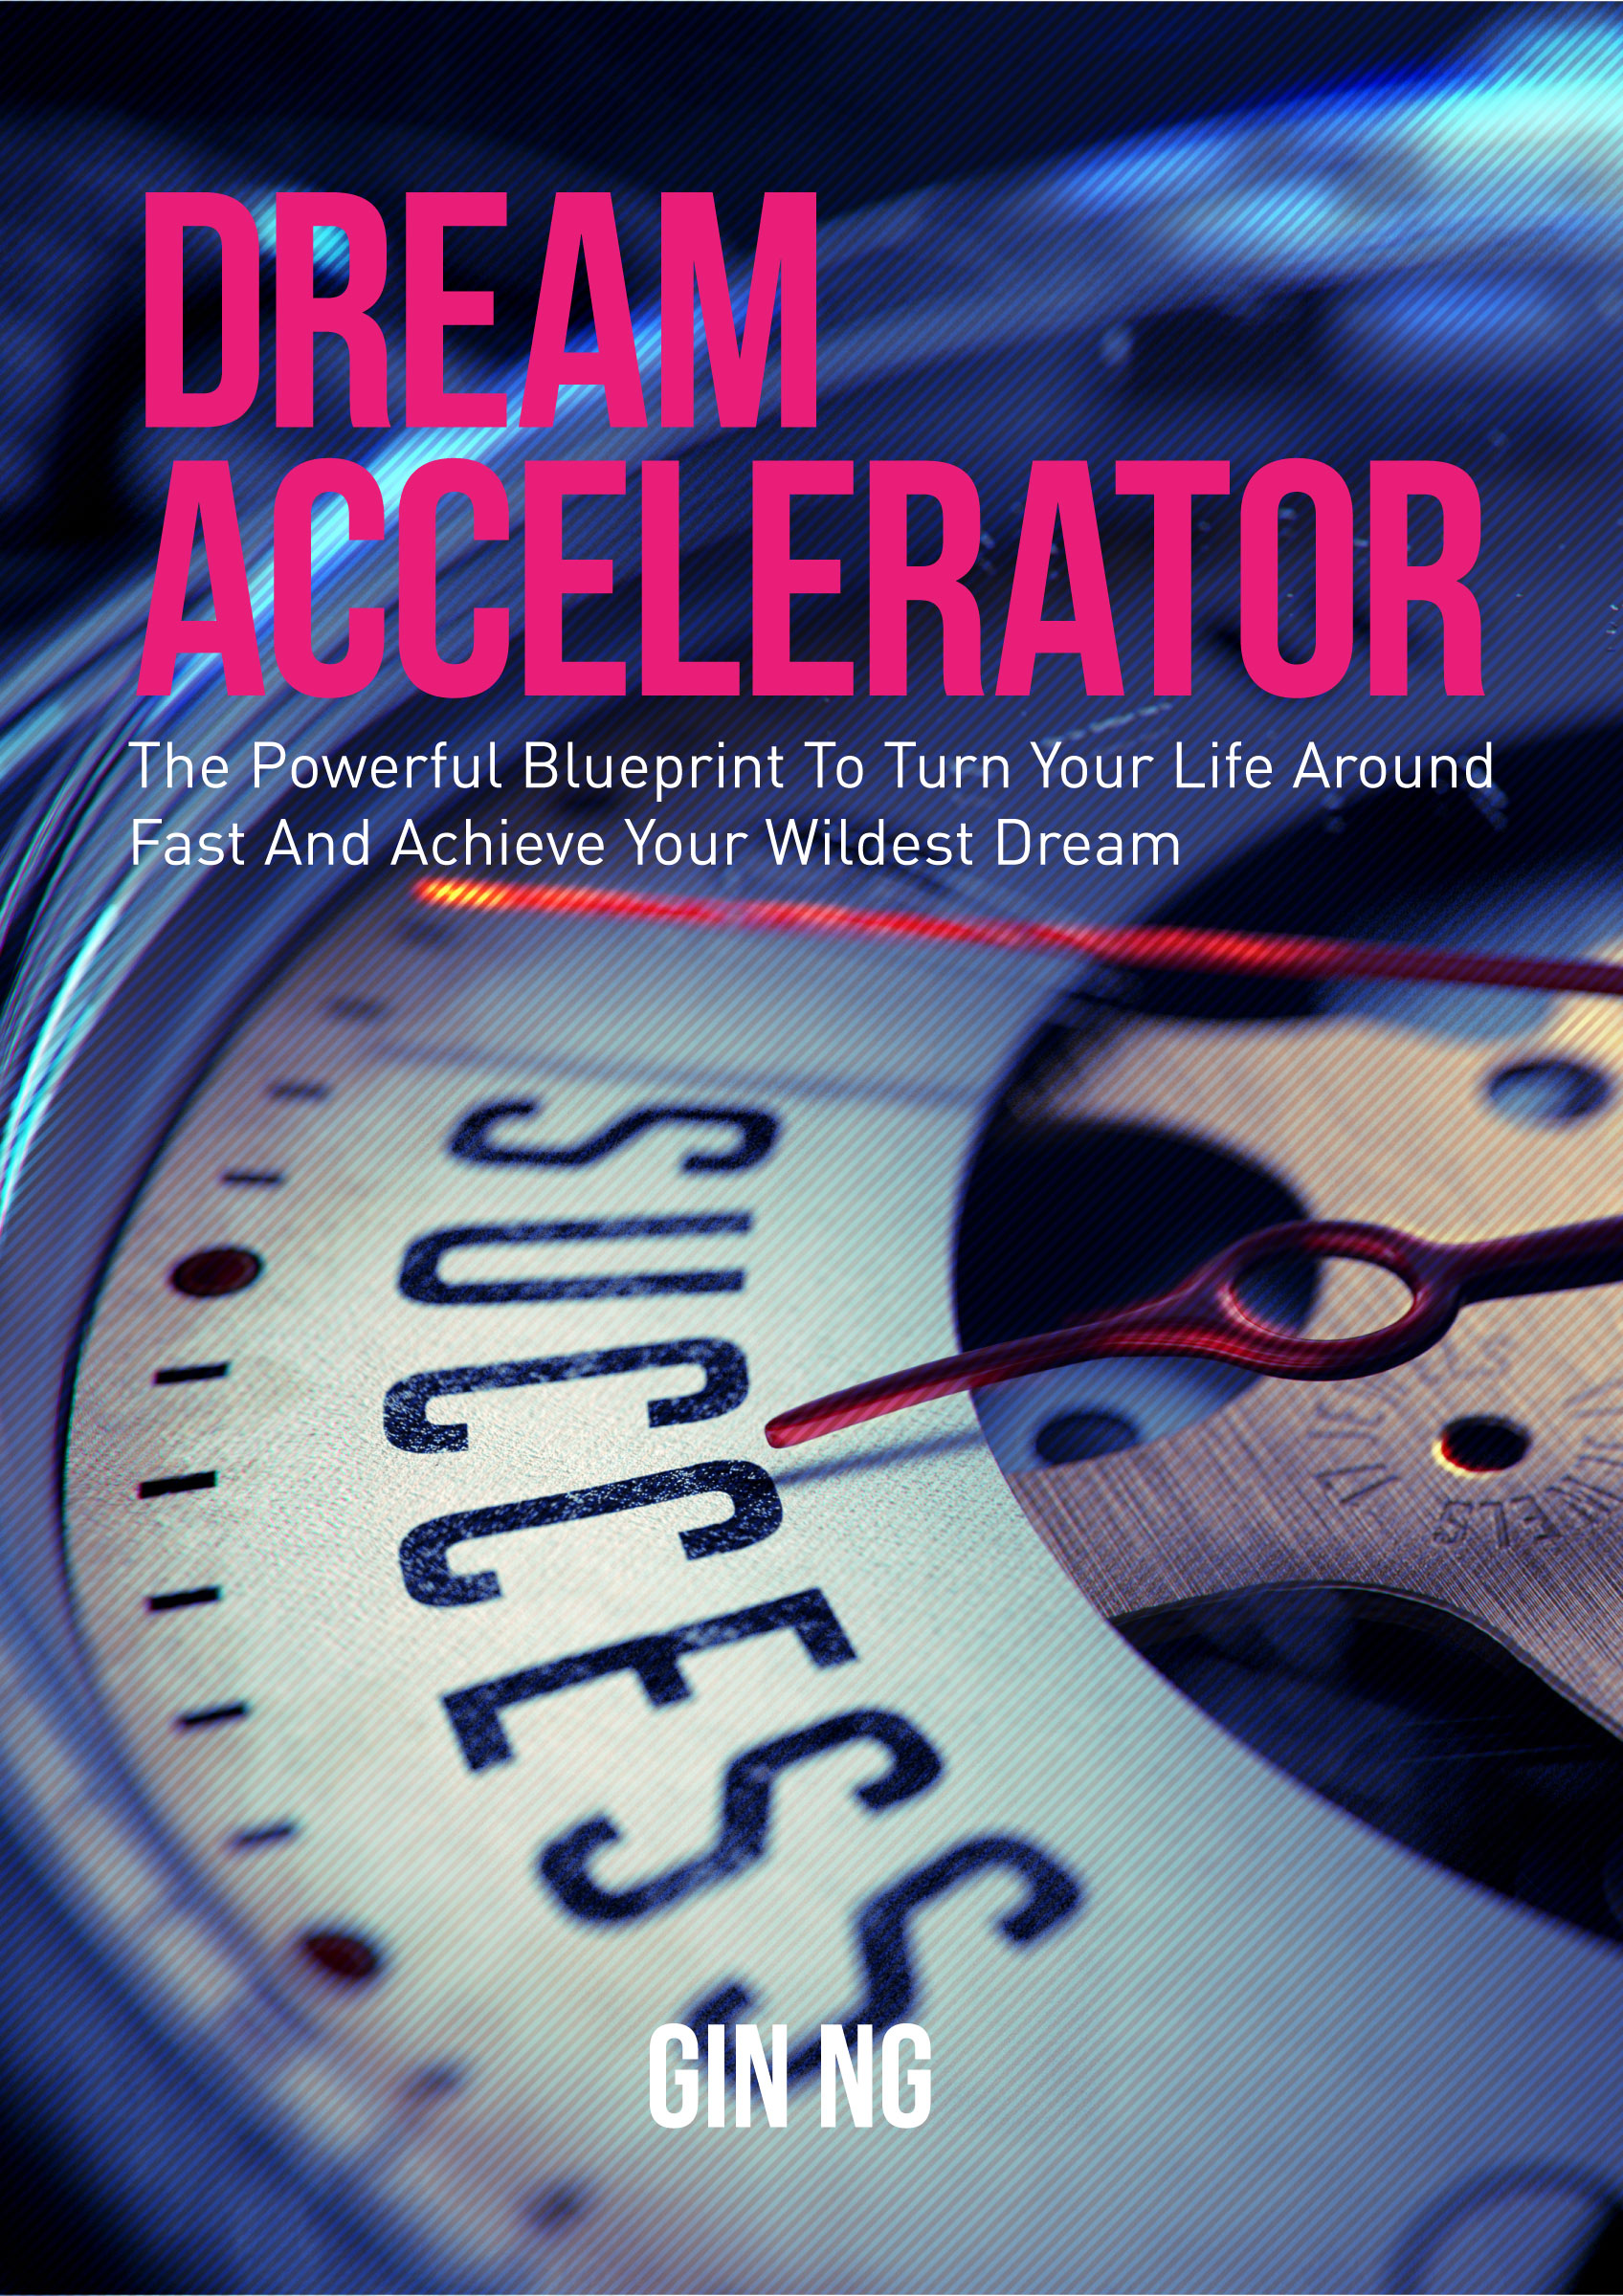 Dream accelerator powerful personal development newsletter get your free ebook and discover the same blueprint i use to help you turn your life around fast and achieve your wildest dreams malvernweather Images